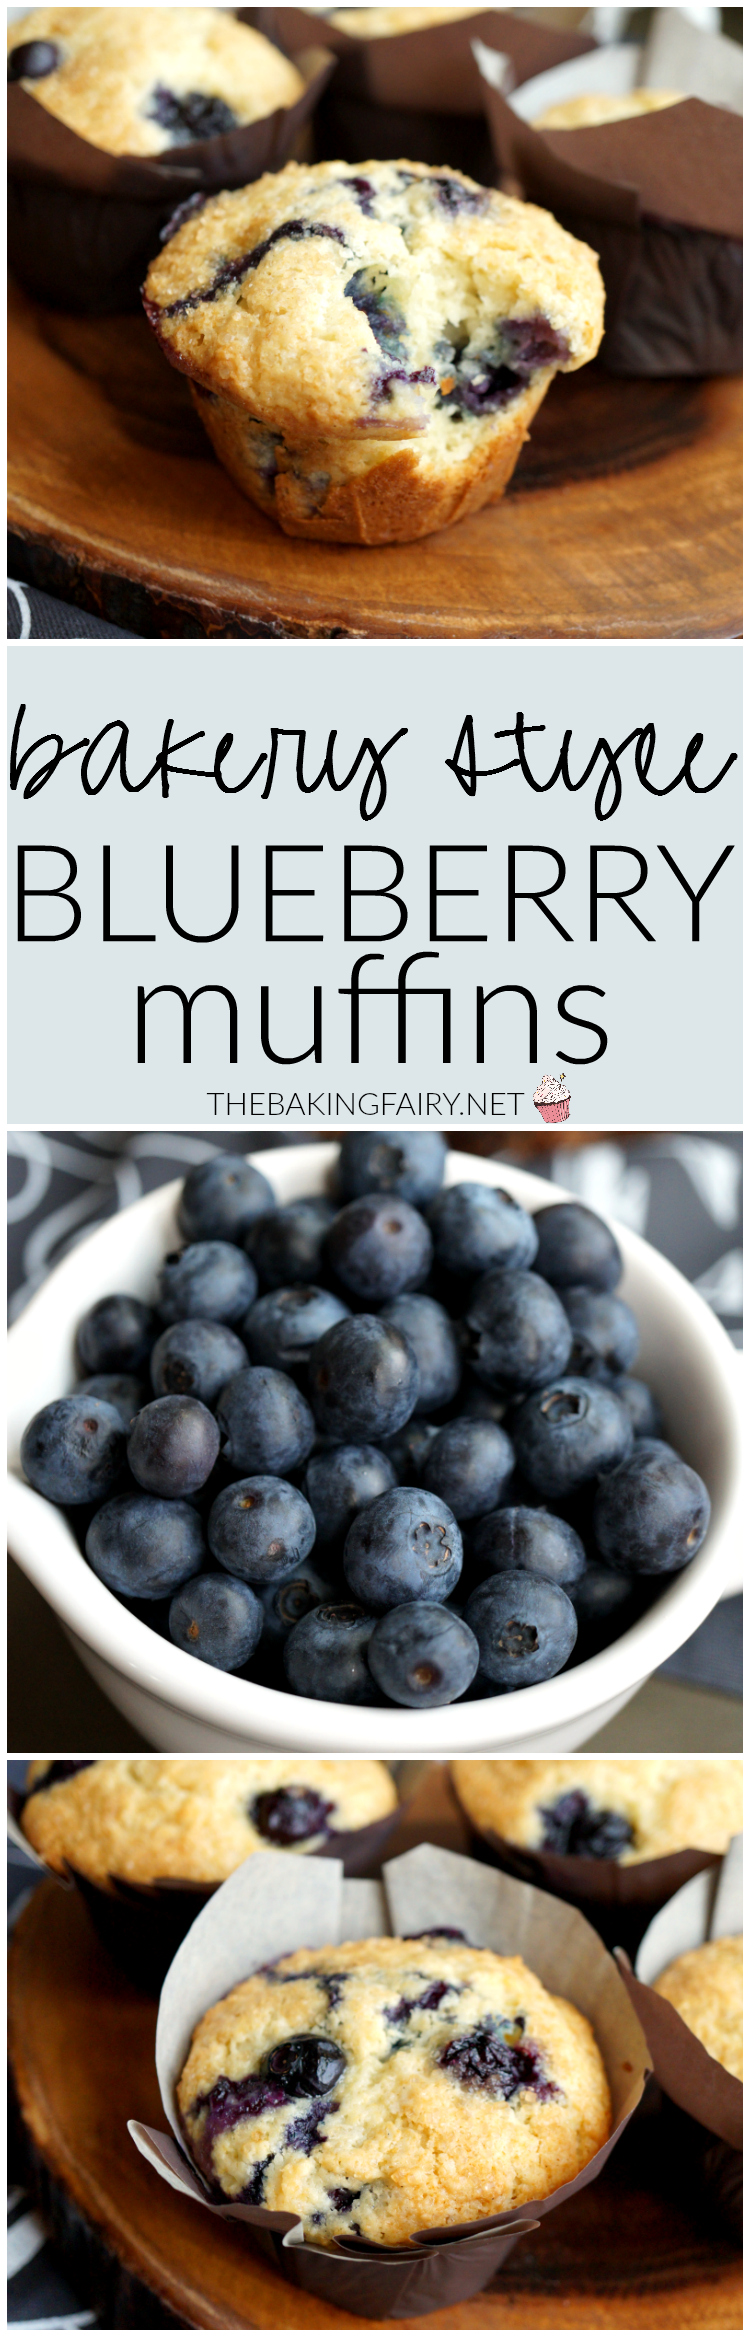 bakery-style blueberry muffins | The Baking Fairy